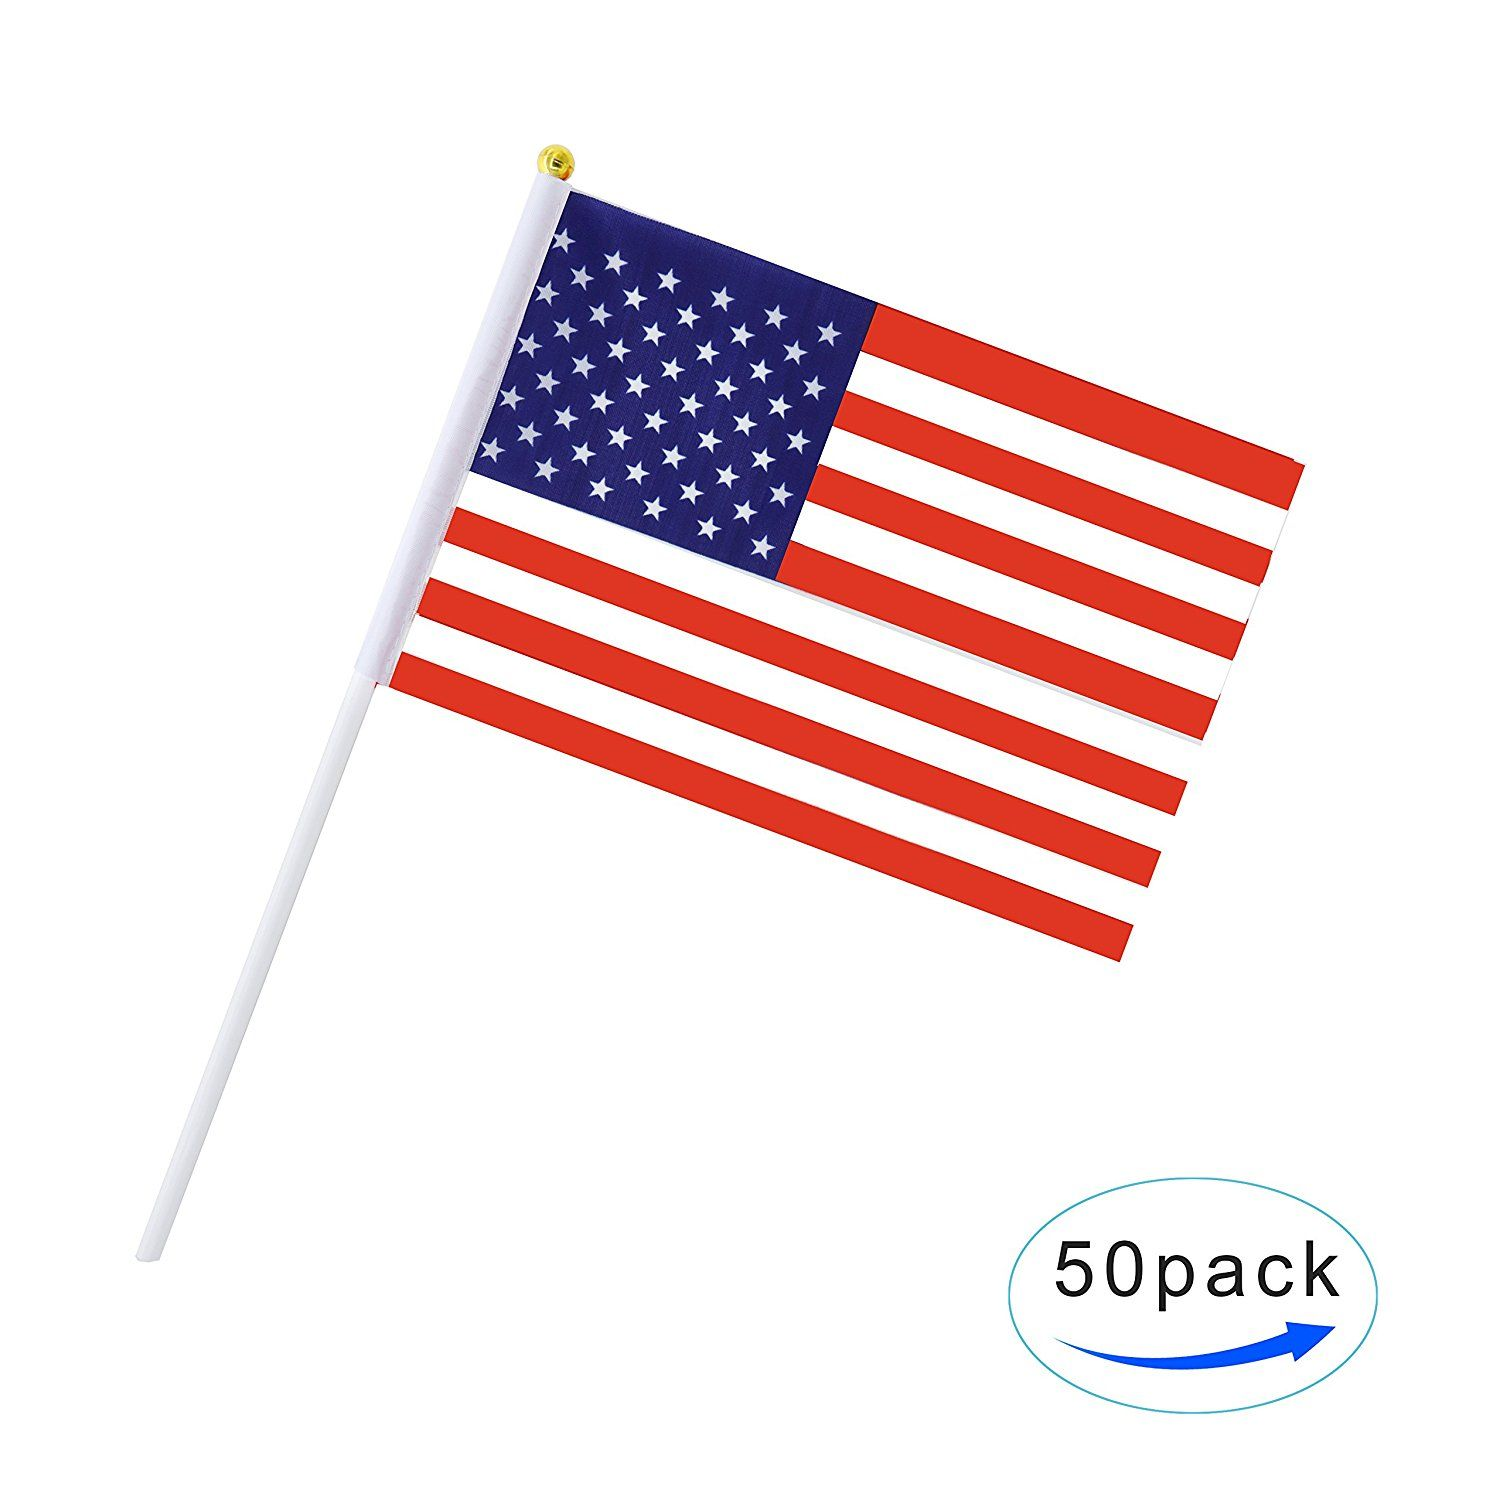 Amazonsmile Us Stick Flag Usa Stick Flag American Stick Flag Small Mini Flag 50 Pack Hand Held Flag Country Party Decoration Supplies Flag Country Mini Flags